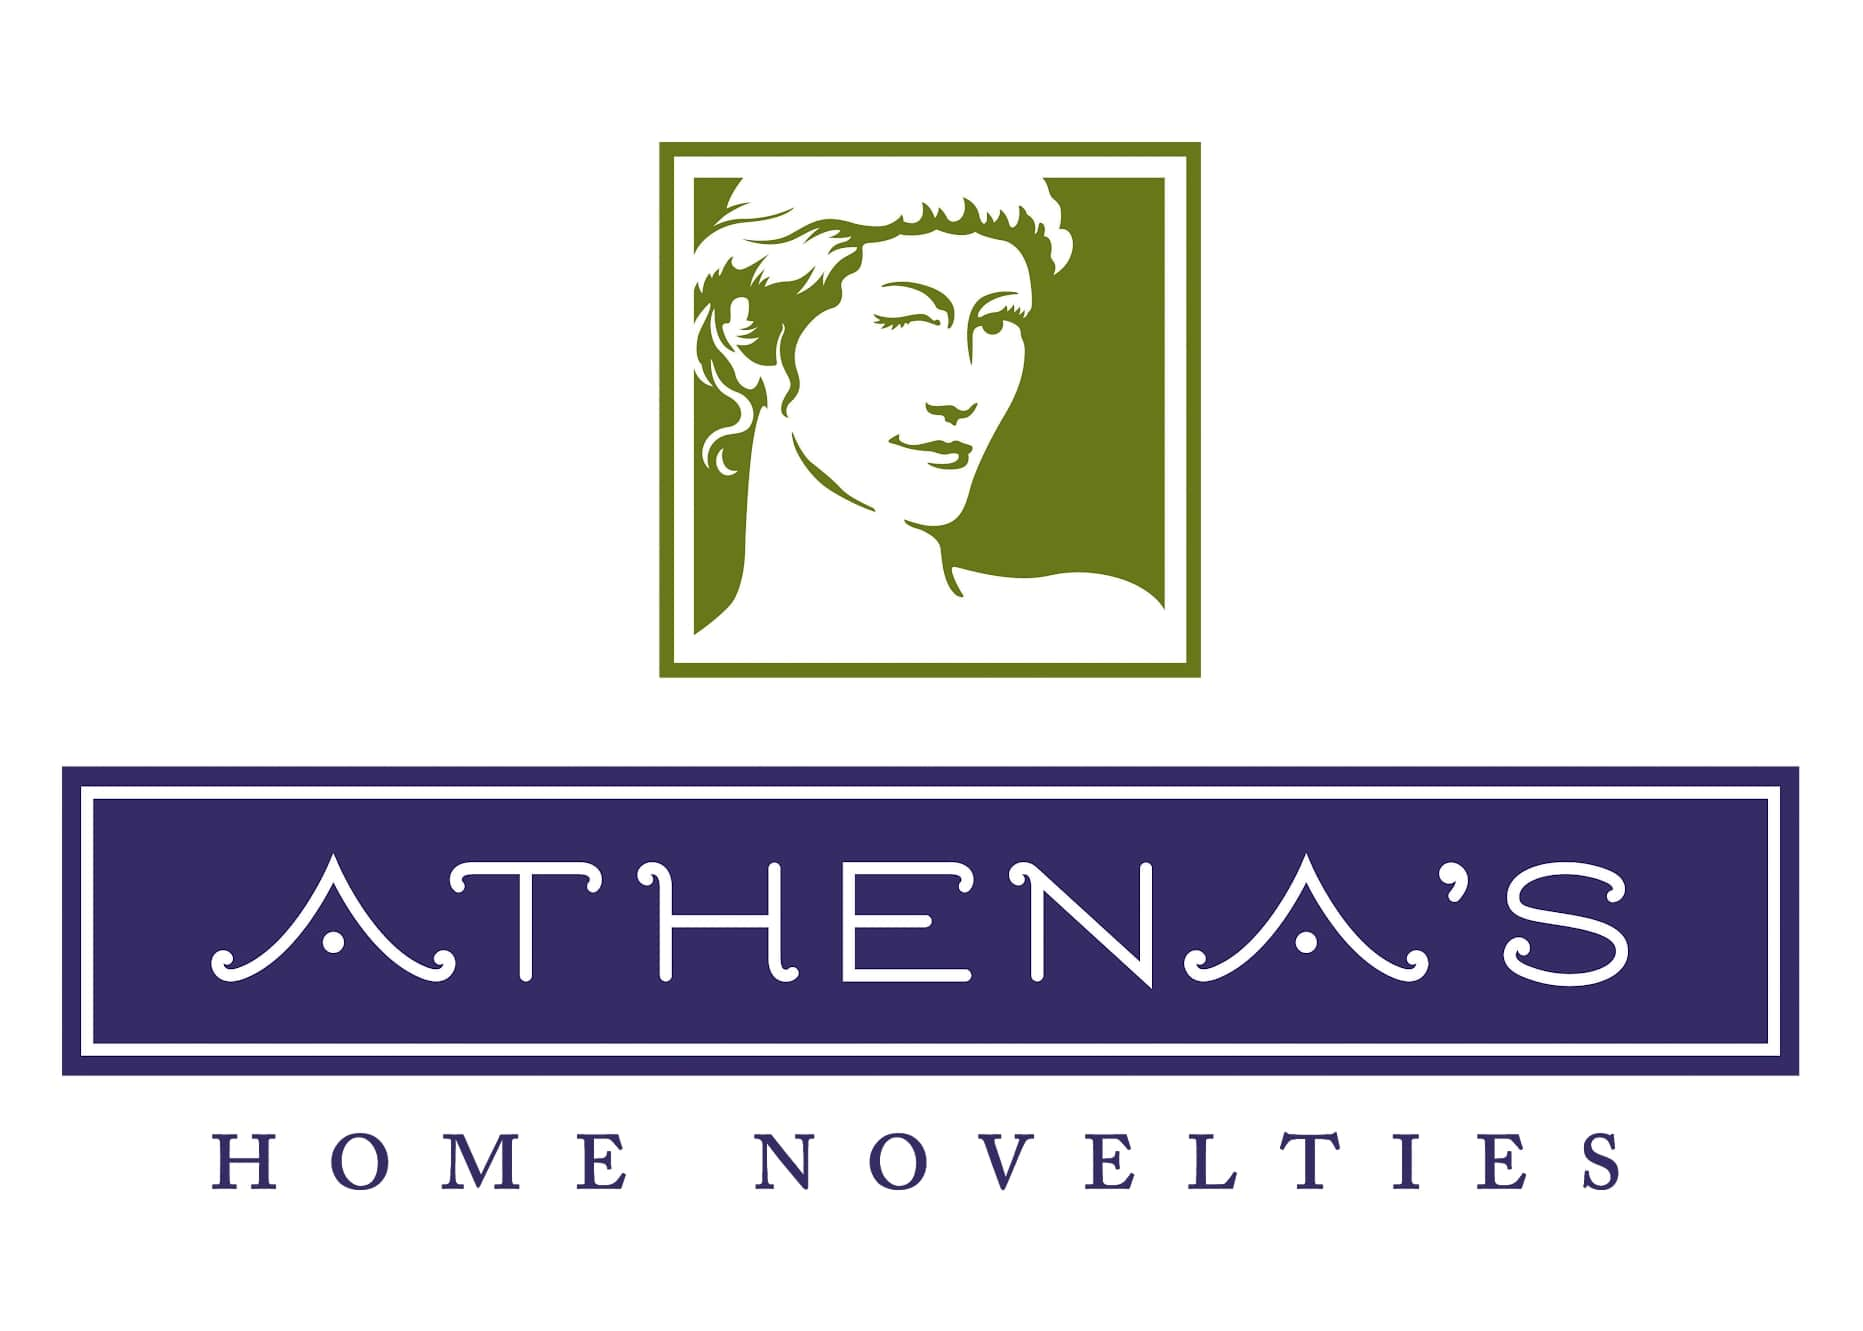 Athena's by Sarah